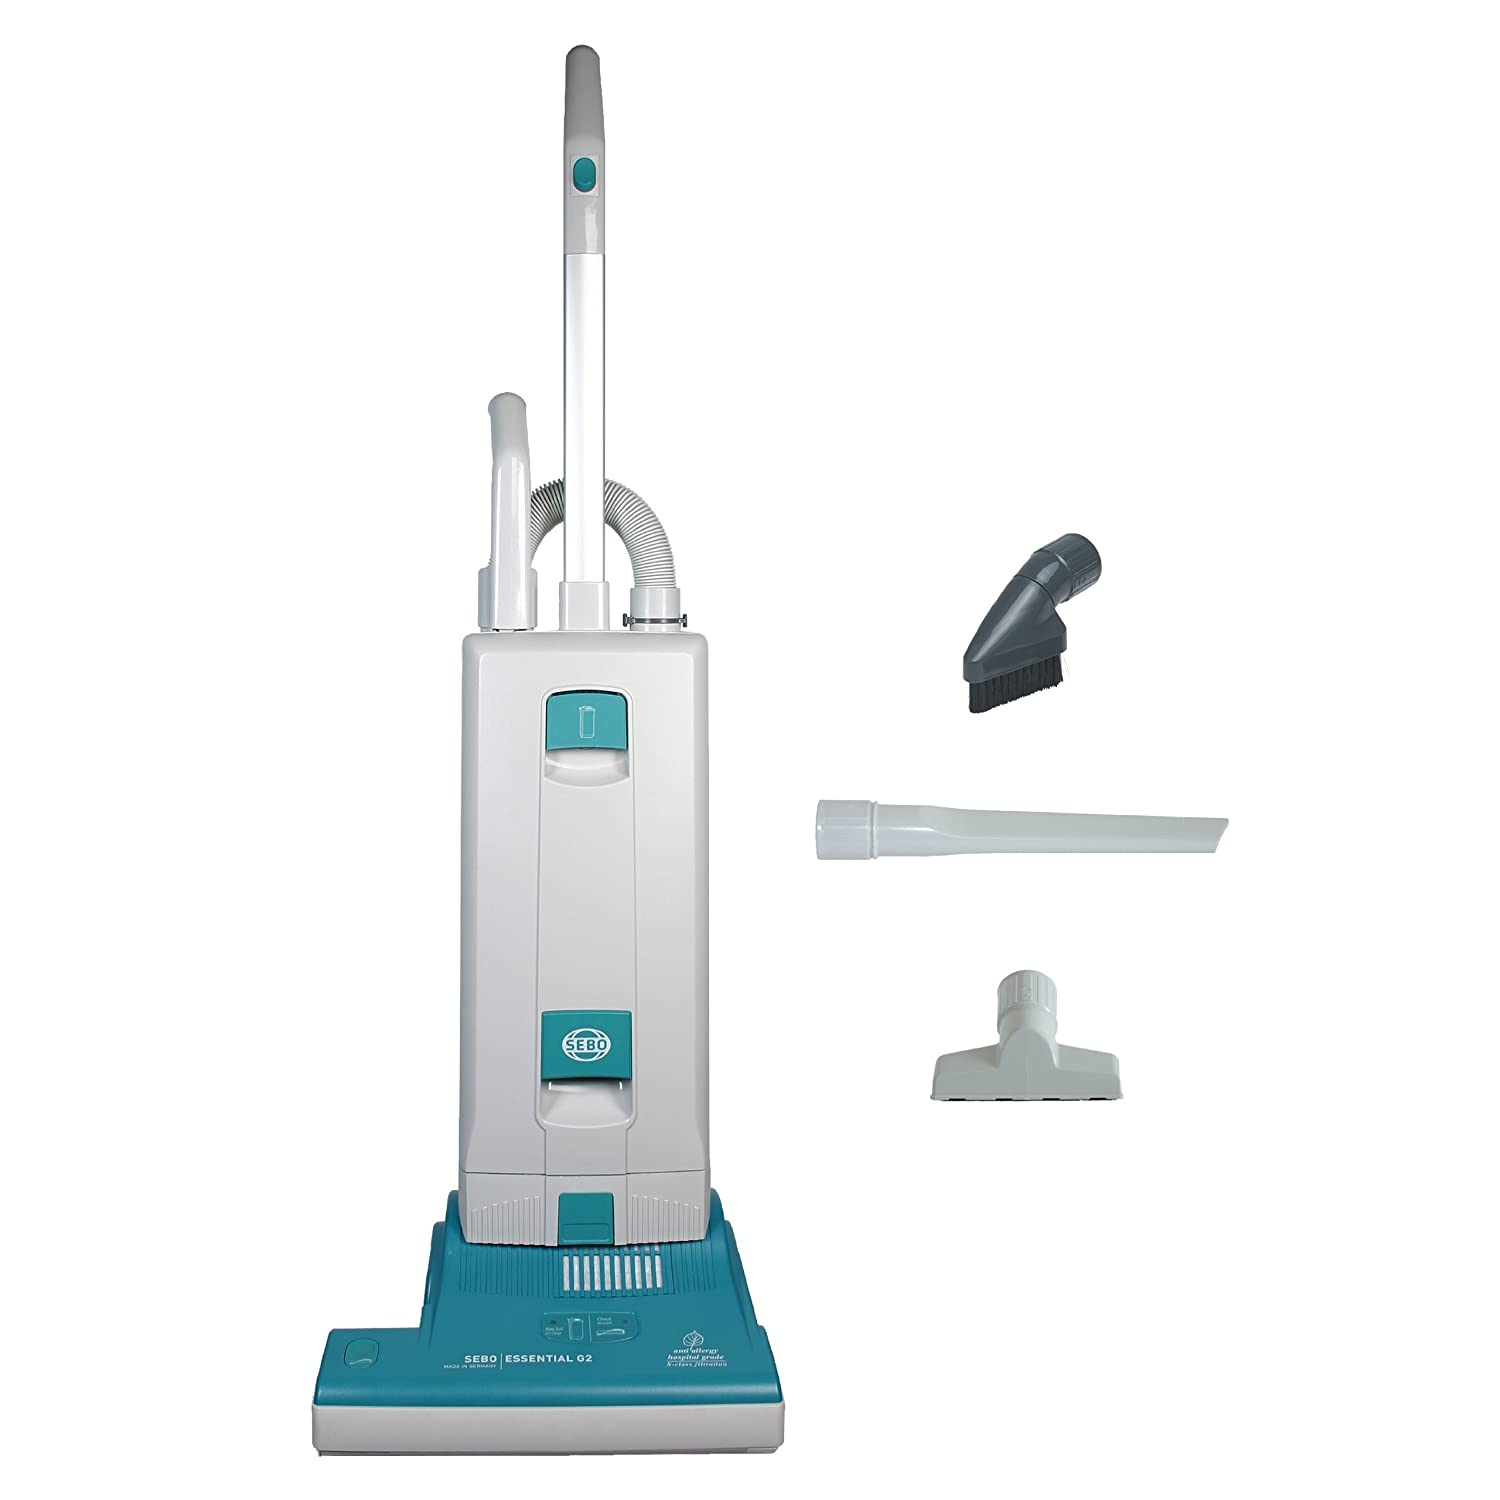 Sebo vacuum cleaners at bed bath and beyond - Amazon Com Sebo 9592at Essential G2 Upright Vacuum With 15 Inch Power Head Light Gray And Teal Household Upright Vacuums